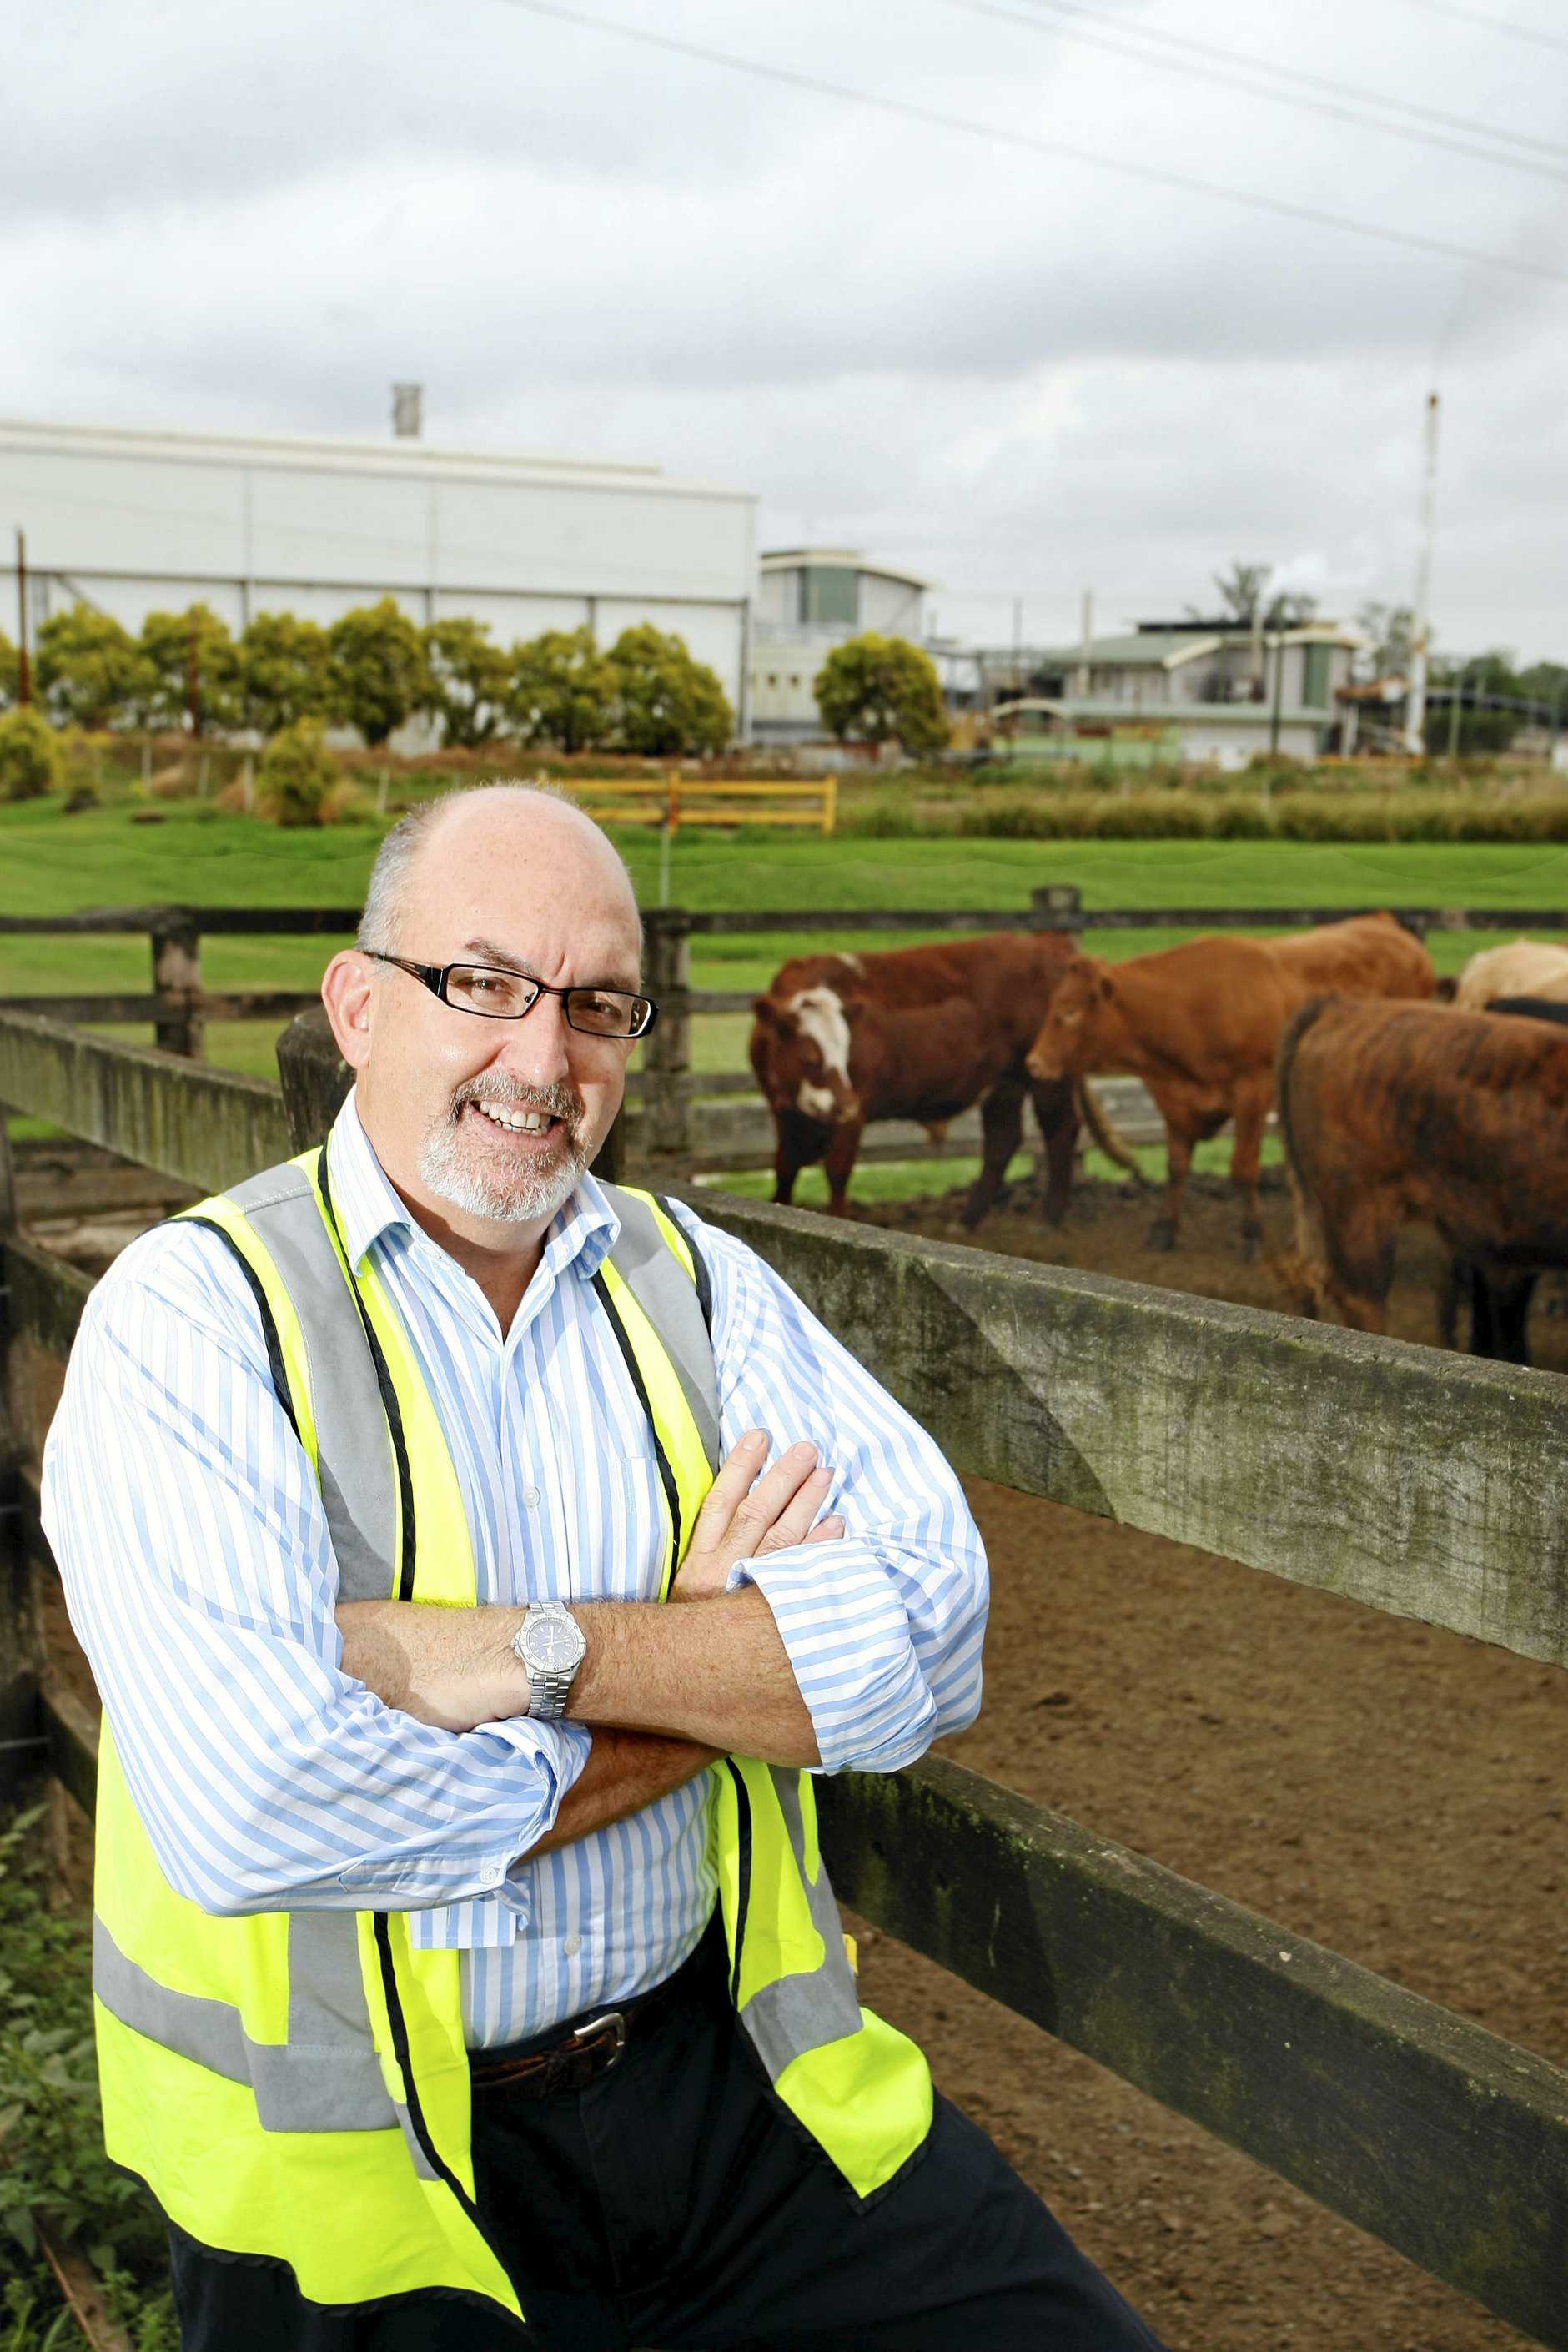 John Berry is the director of food manufacturer JBS Australia. As manufacturing is one of the biggest industries in the region, JBS is able to offer employment opportunities to thousands of Ipswich people. It employs about 1,400 people at the Primo Foods site at Wacol and another 2,100 at JBS at Dinmore.